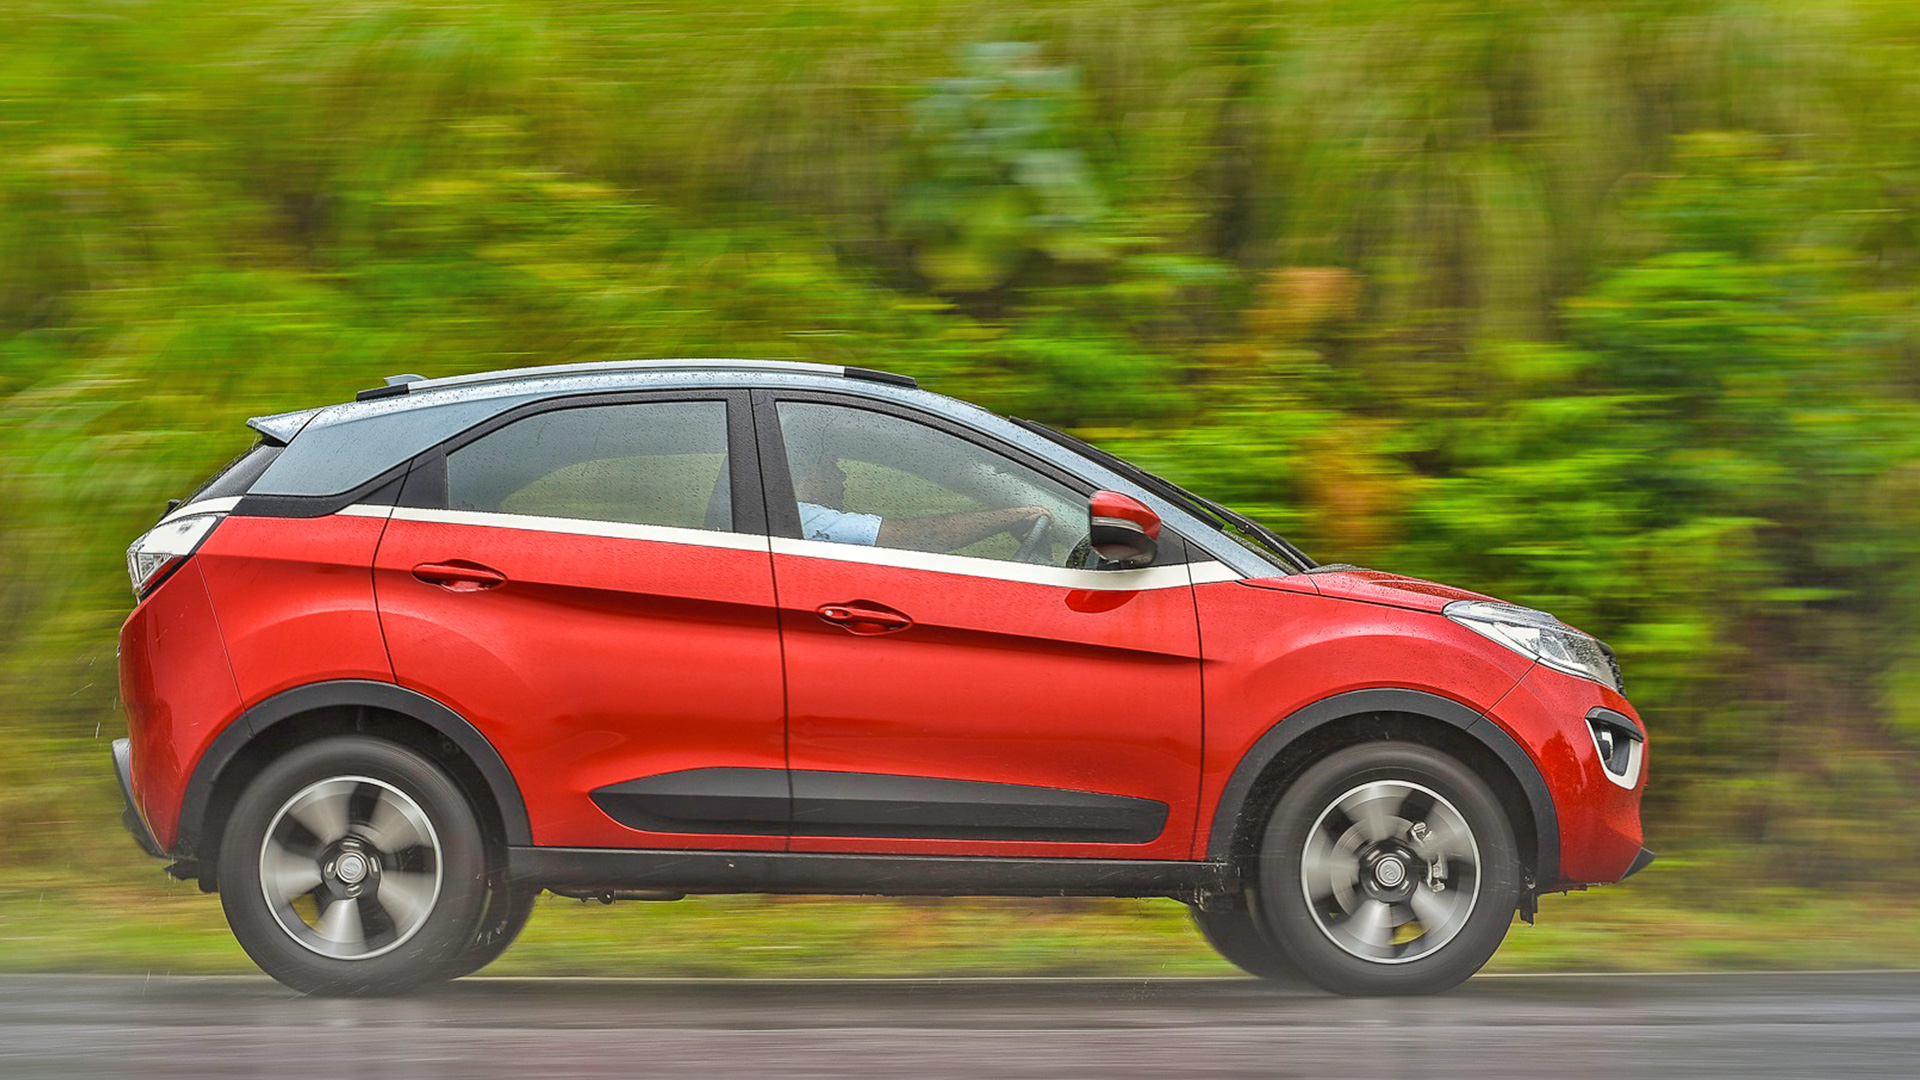 Tata Nexon 2018 Price Mileage Reviews Specification Gallery Overdrive